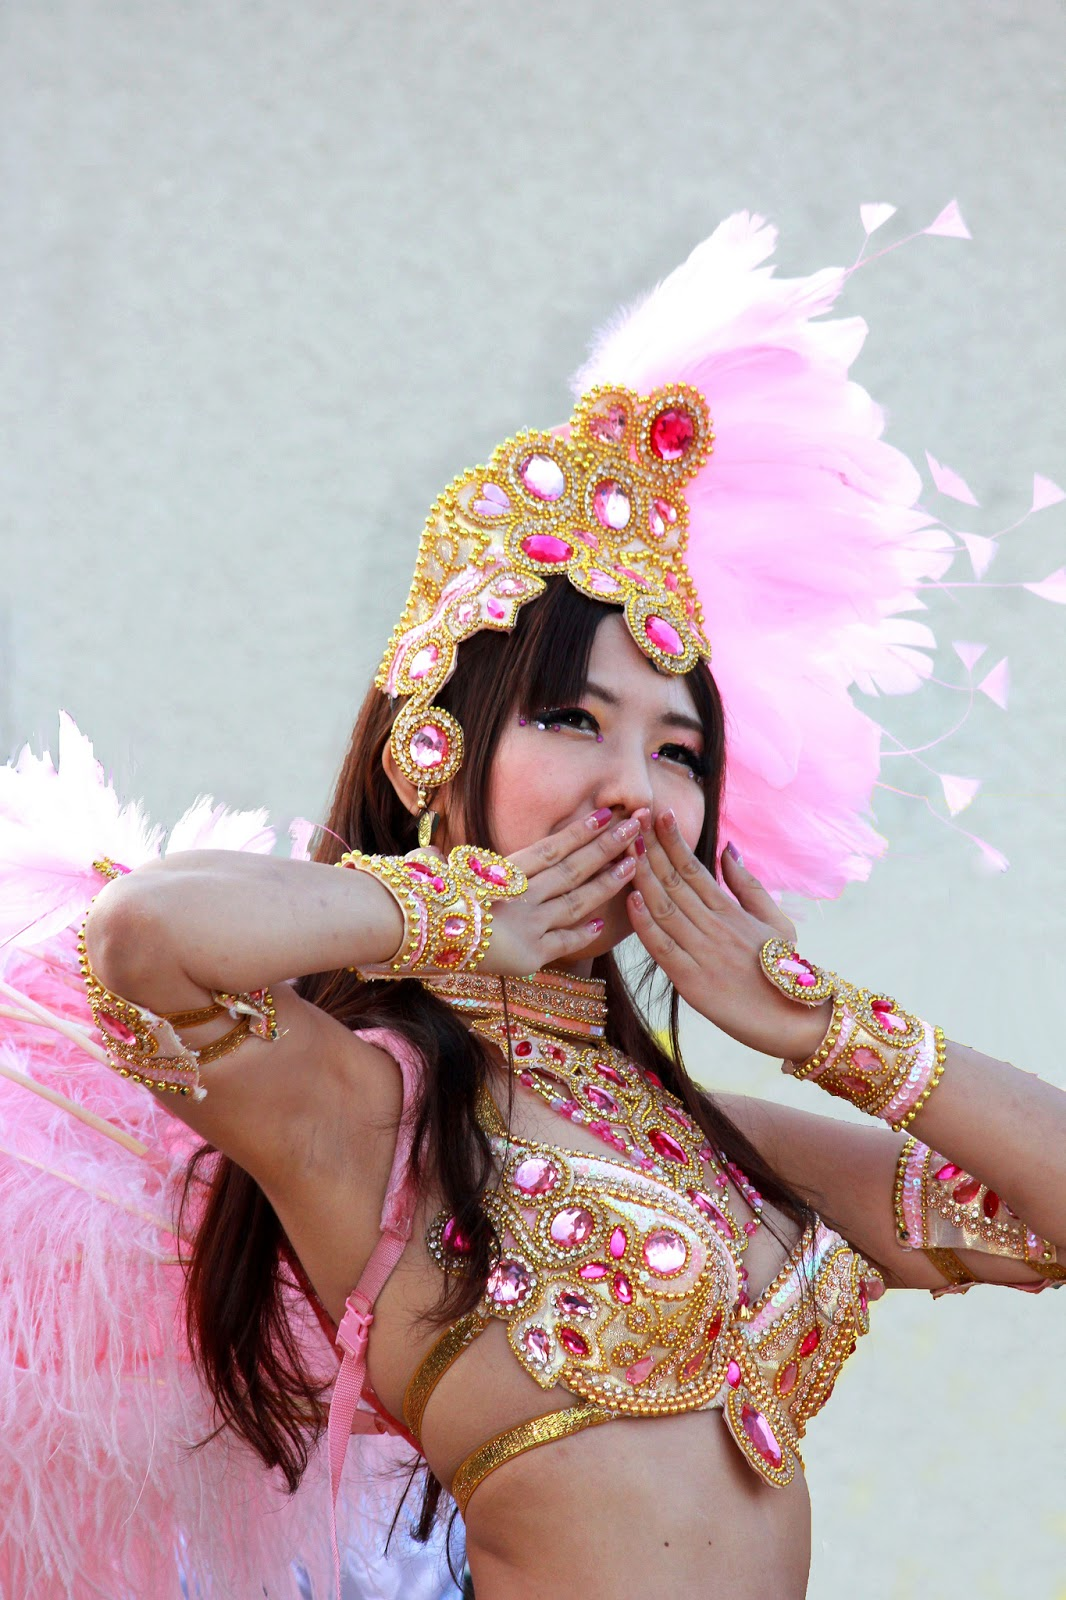 Samba dancer - This photo was taken on November 3, 2012 using a Canon EOS Kiss X4, by tanakawho.